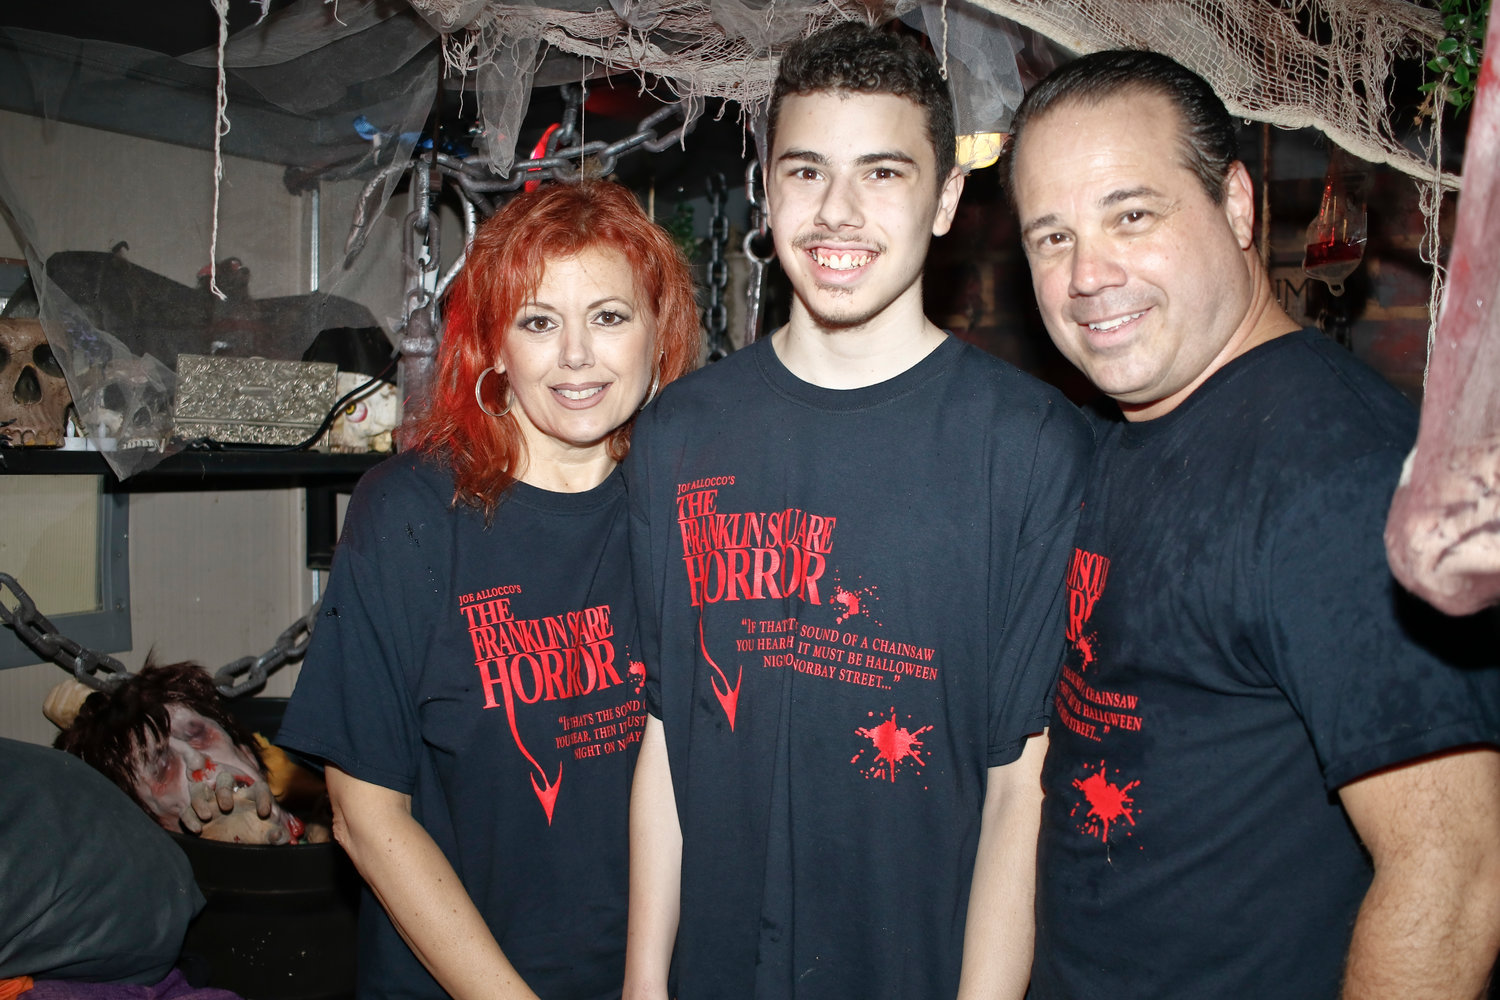 Allocco will celebrate 23 years of his Franklin Square Horror with his son, Joseph Tyler, and wife, Linda.